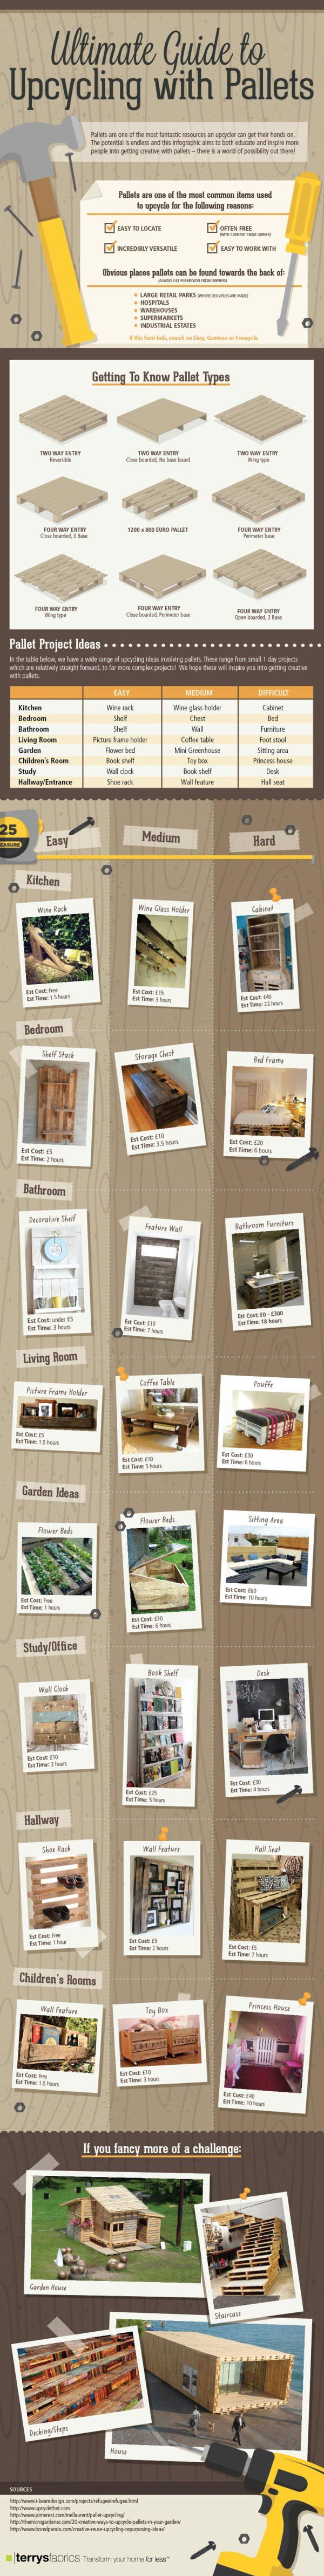 Ultimate Guide To Upcycling Pallets | Palets, Muebles de pallets y ...